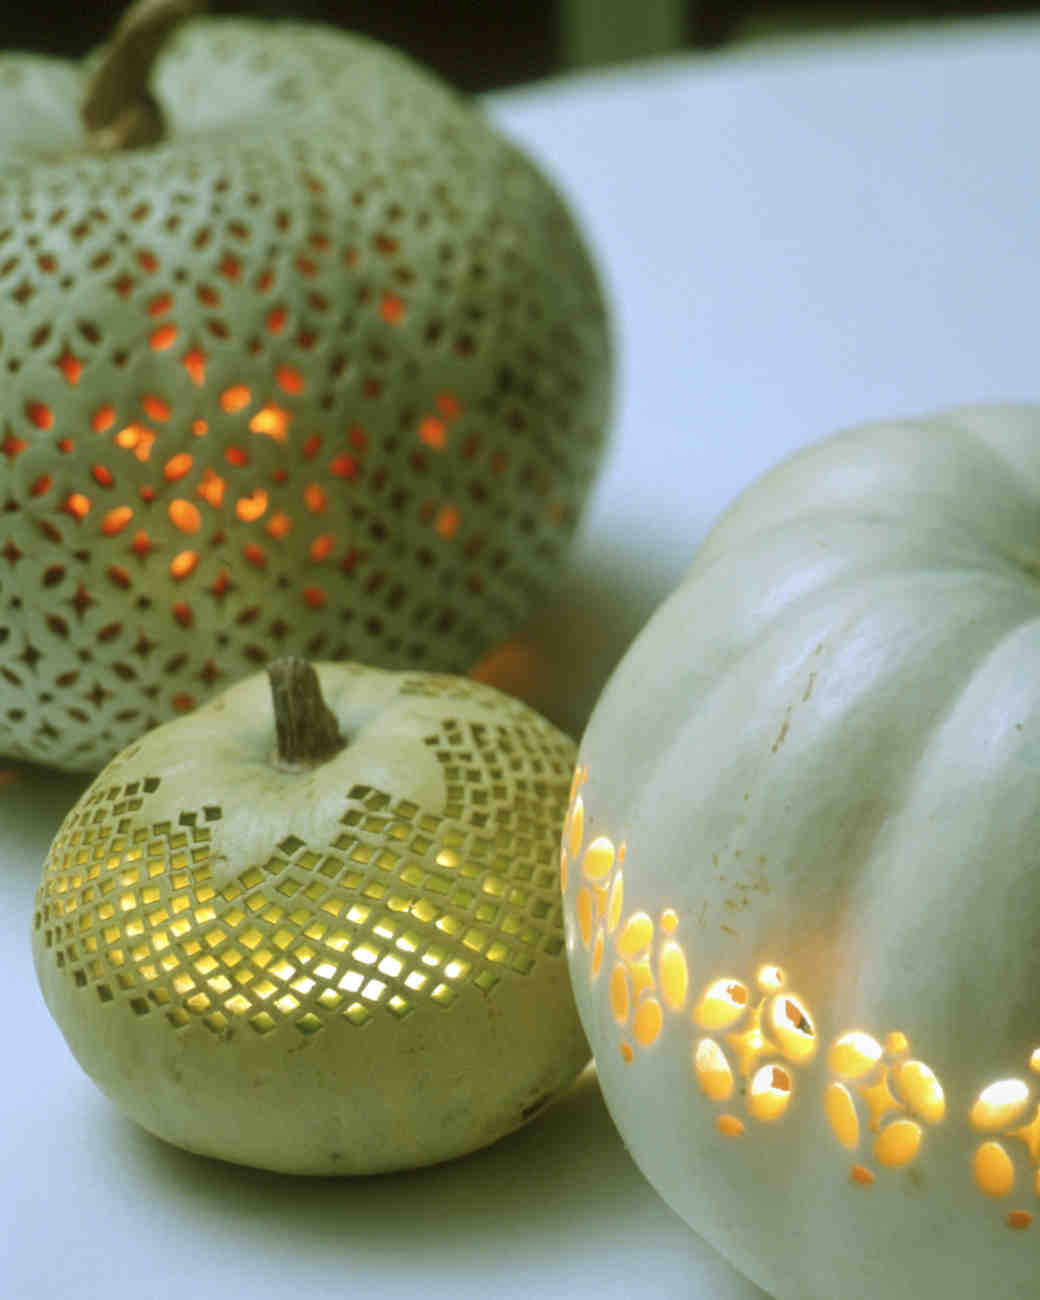 Lit Pumpkin Lanterns with Patterned Carvings